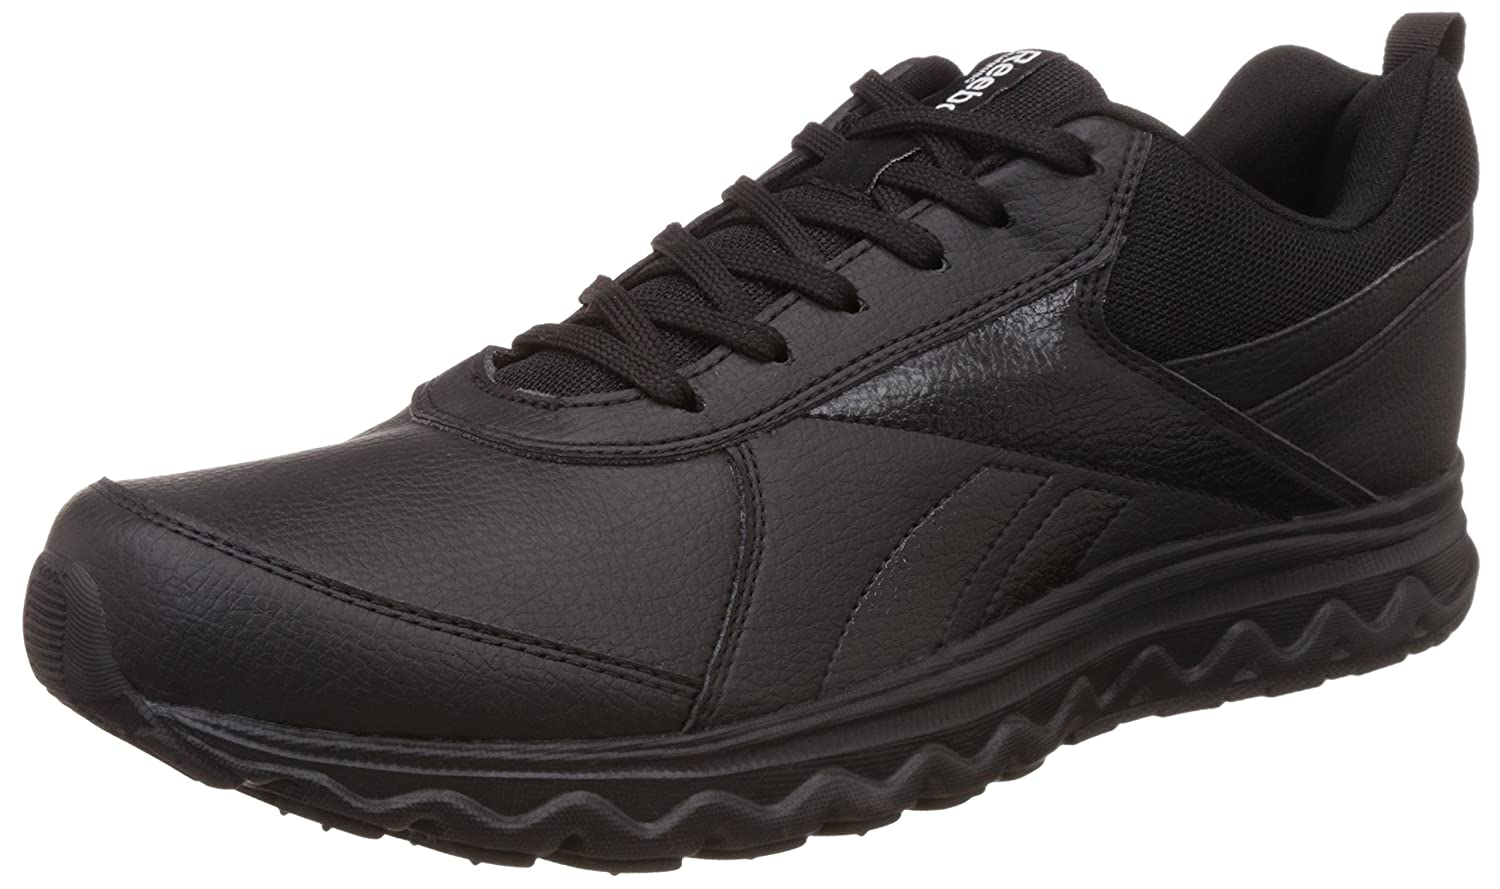 05e4f5464f Reebok Men s School Sports Running Shoes  Buy Online at Low Prices in India  - Amazon.in